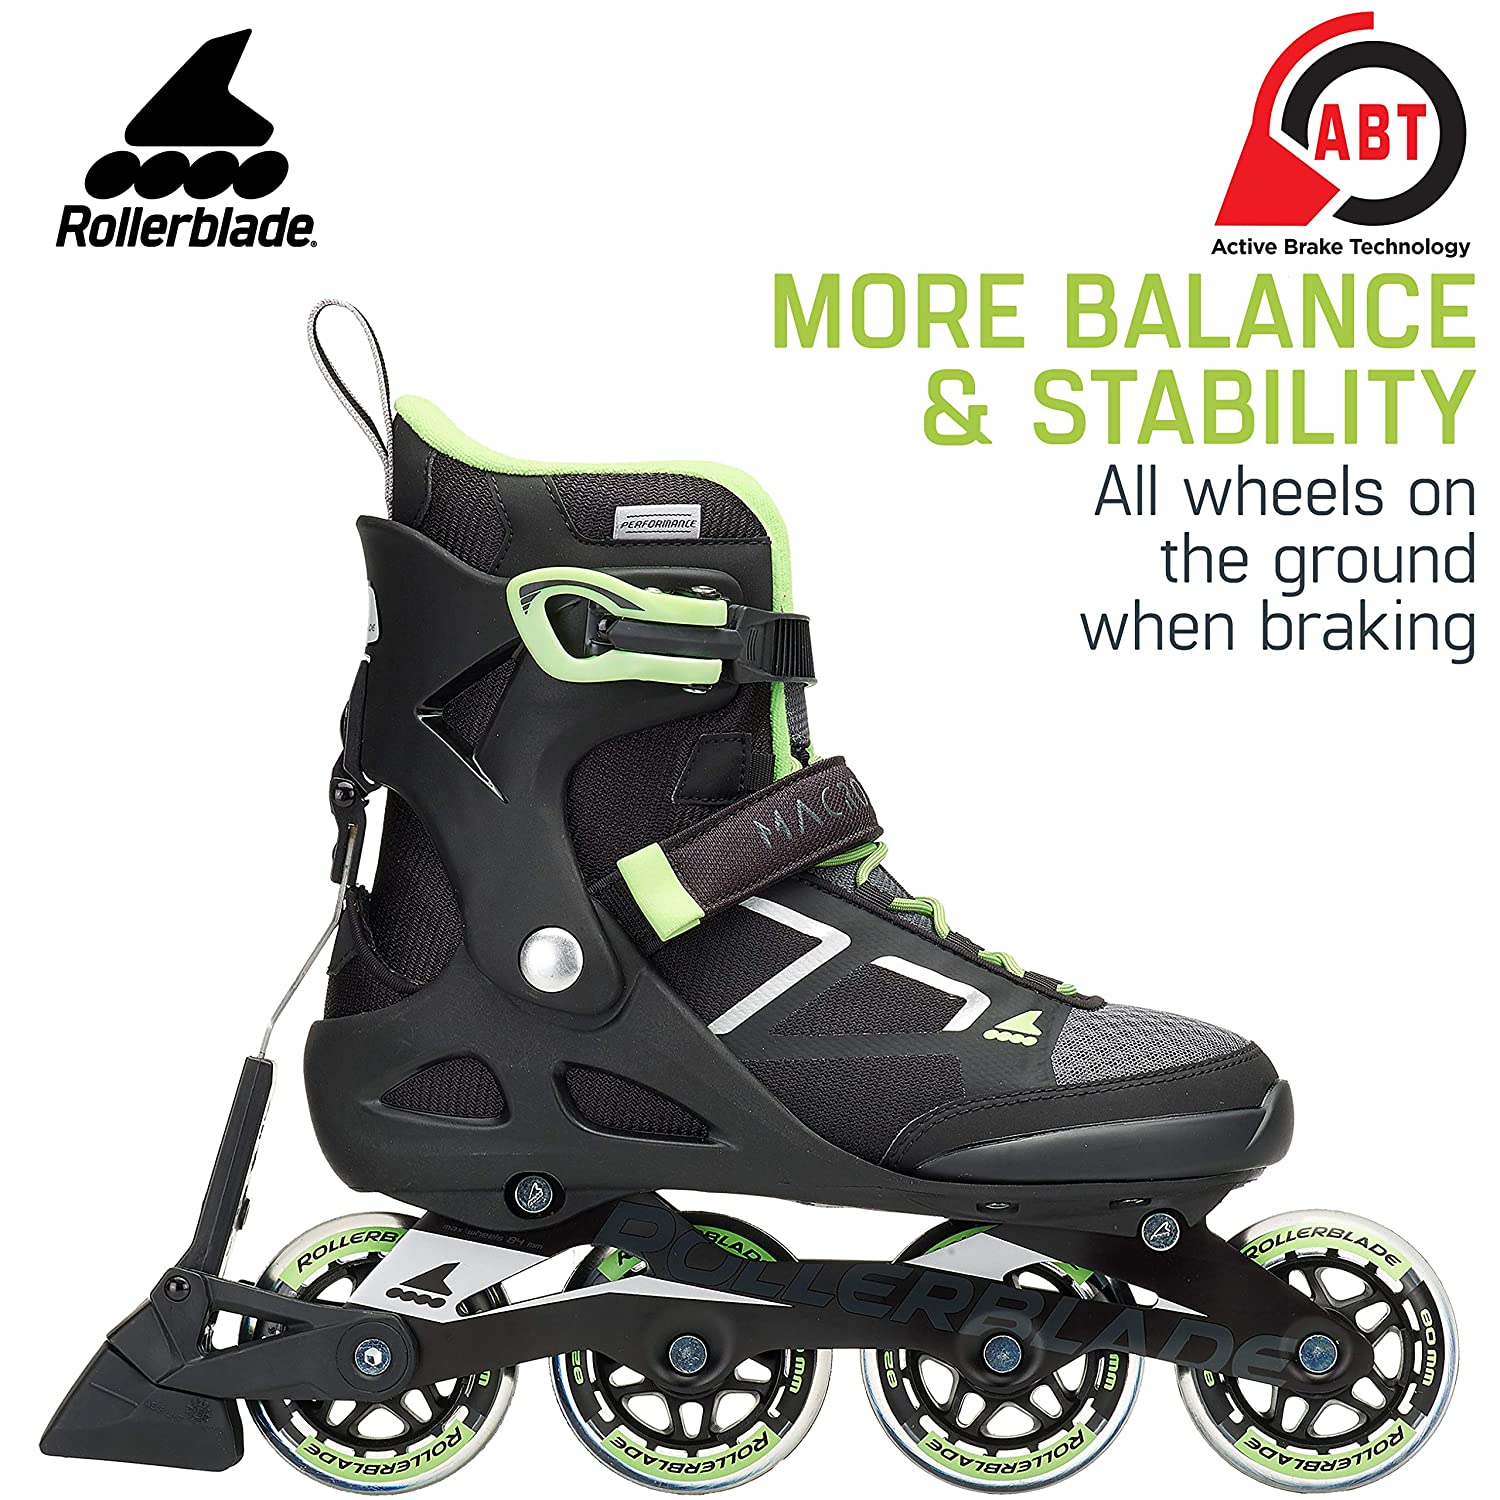 930f513a5ab Amazon.com : Rollerblade Macroblade 80 ABT Women's Adult Fitness Inline  Skate, Black and Light Green, Performance Inline Skates : Sports & Outdoors